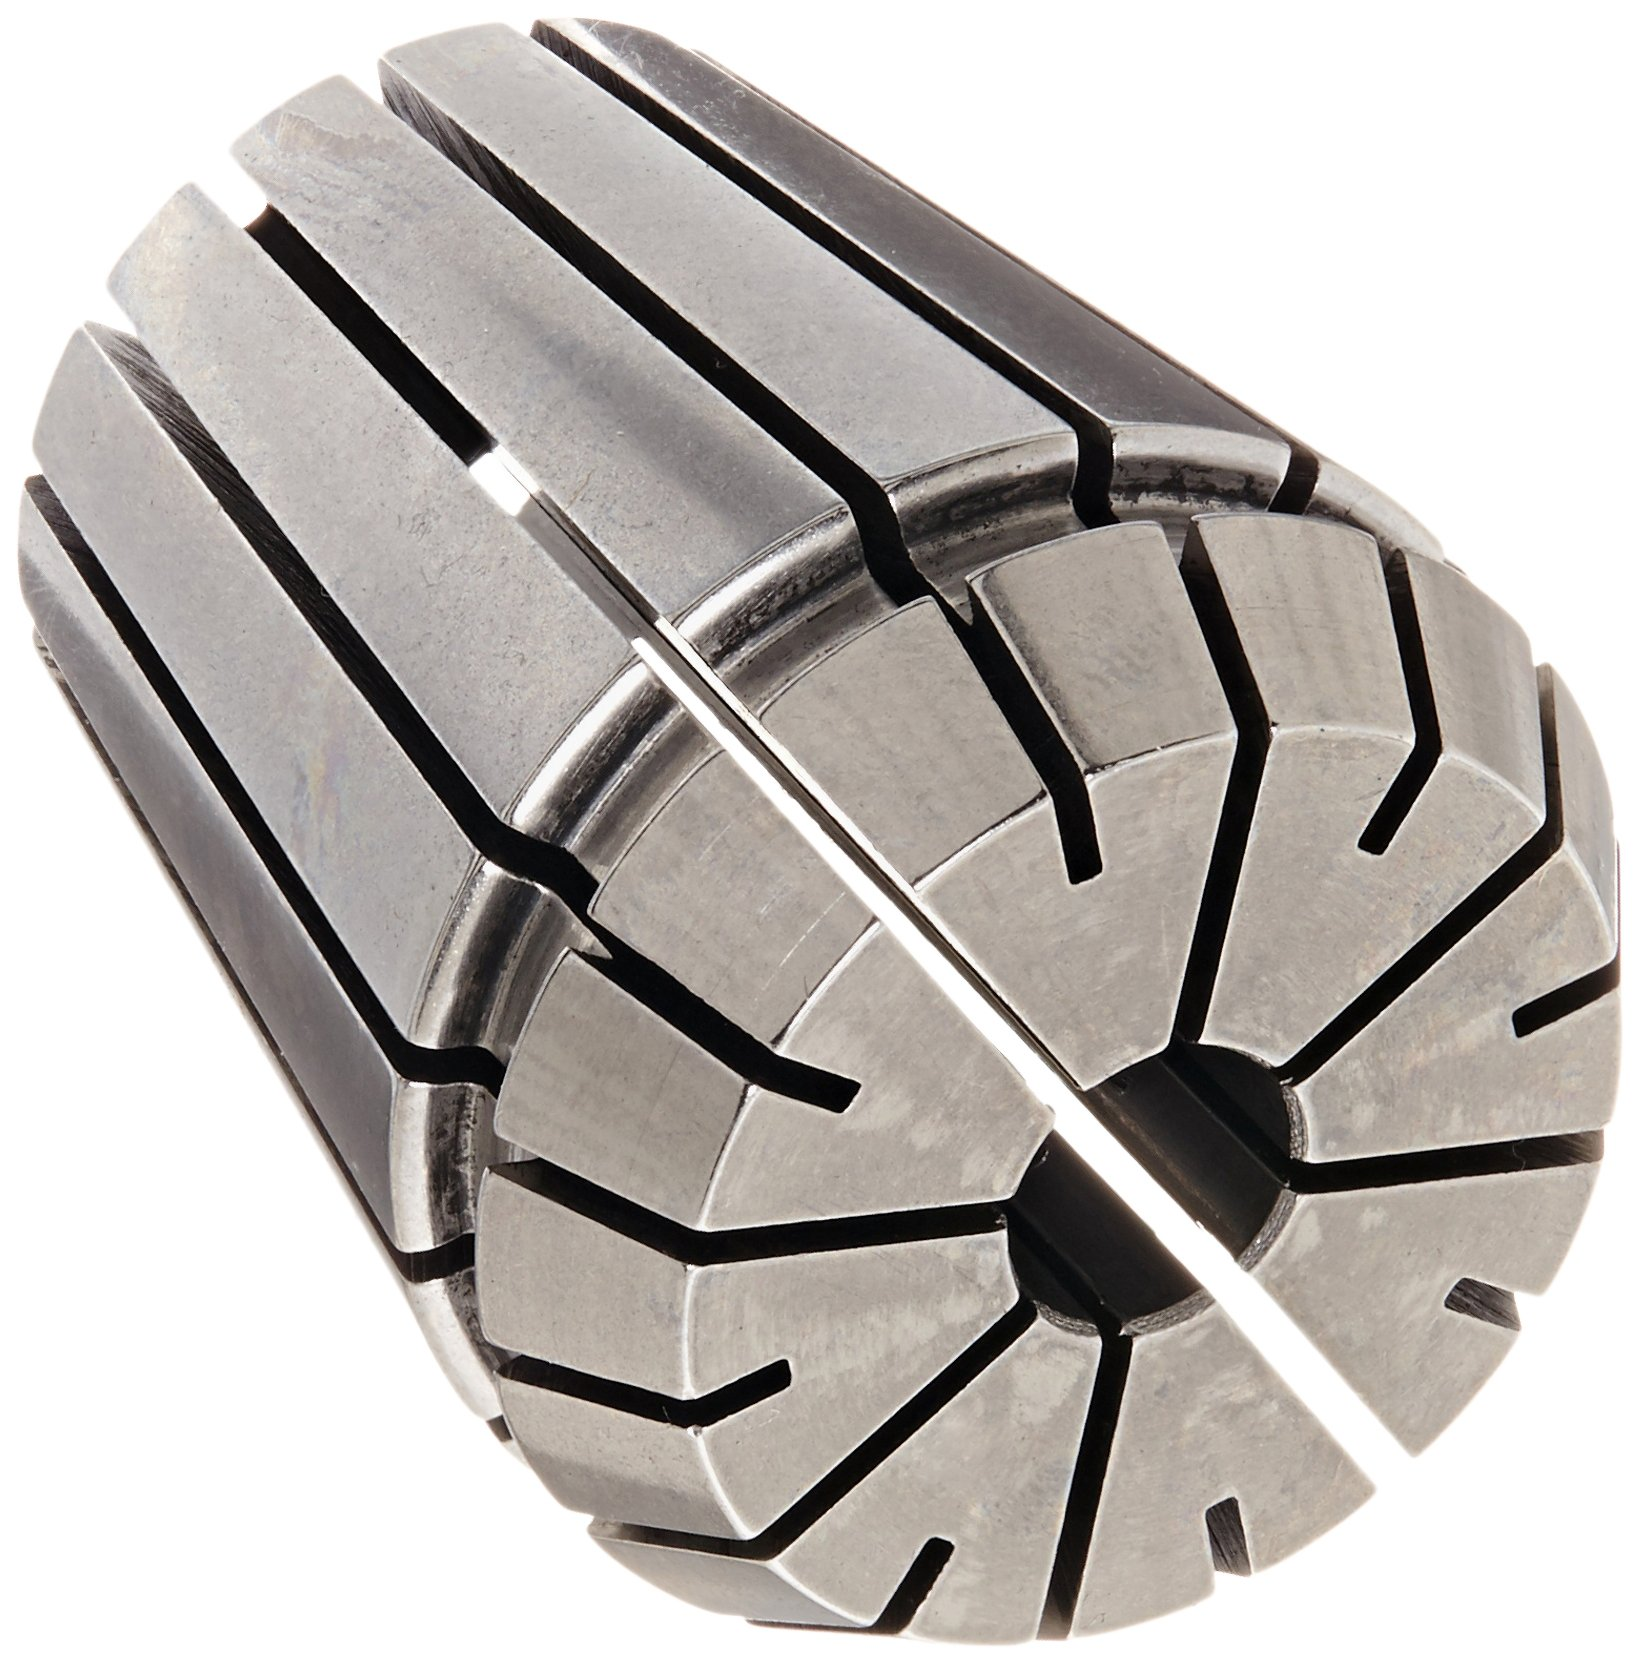 Dorian Tool ER32 Alloy Steel Ultra Precision Collet, 0.276'' - 0.315'' Hole Size by Dorian Tool